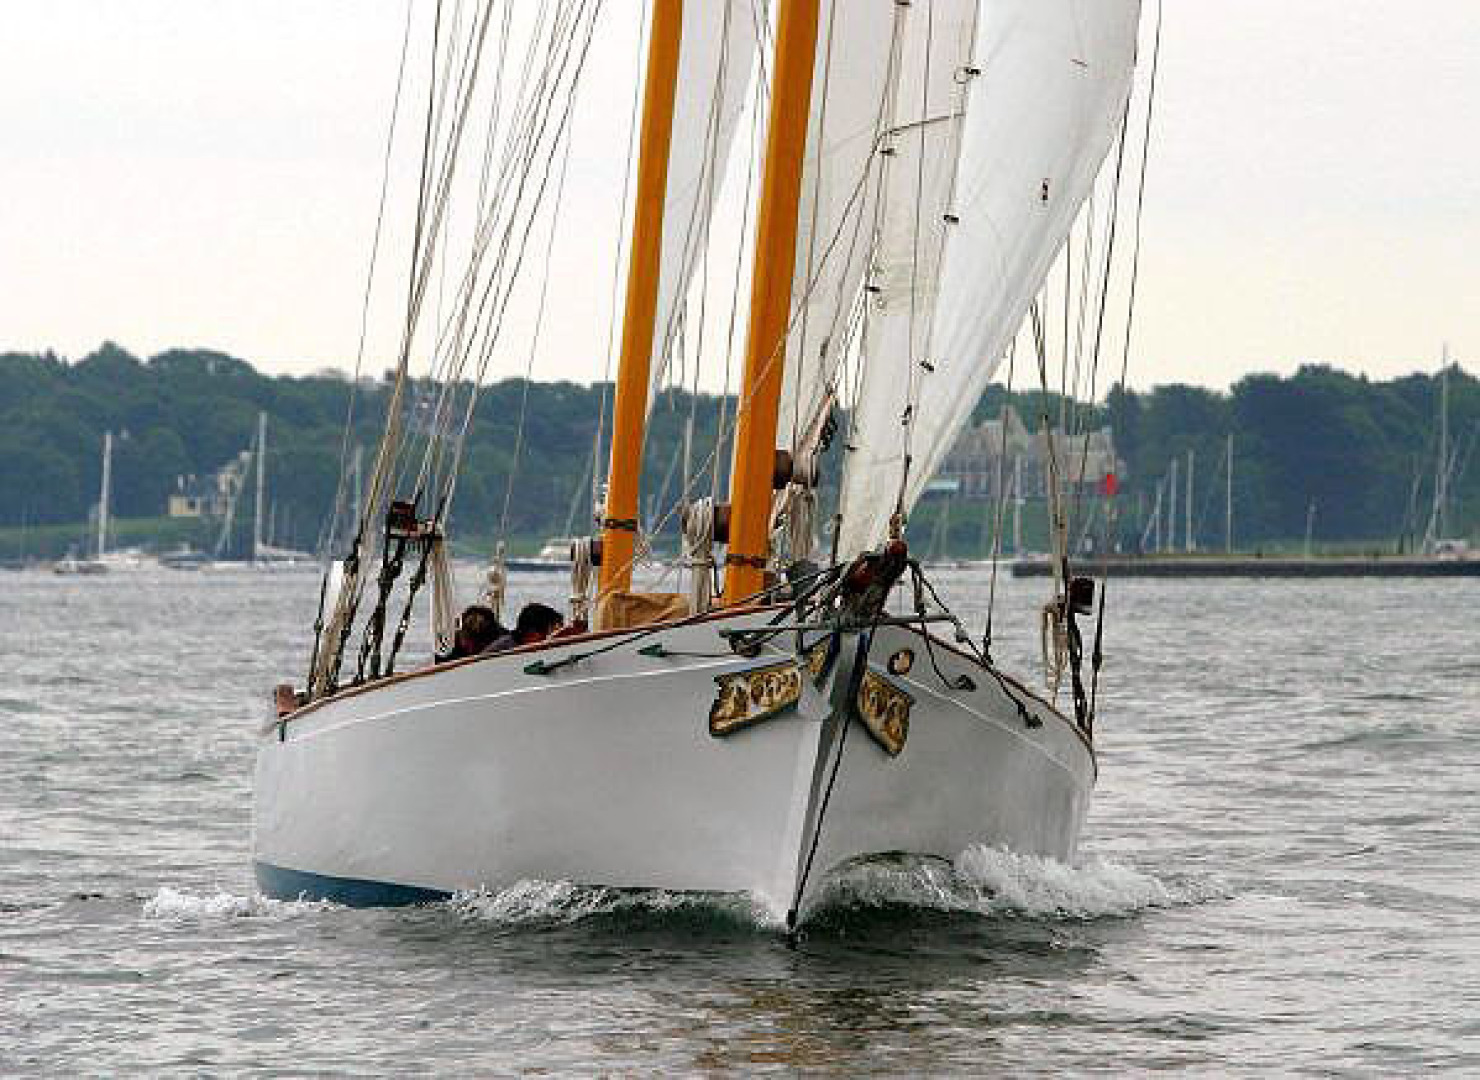 Herreshoff-Bounty 58 2004-CATRIONA Mattapoisett-Massachusetts-United States-Bow, Under Sail-1560596 | Thumbnail